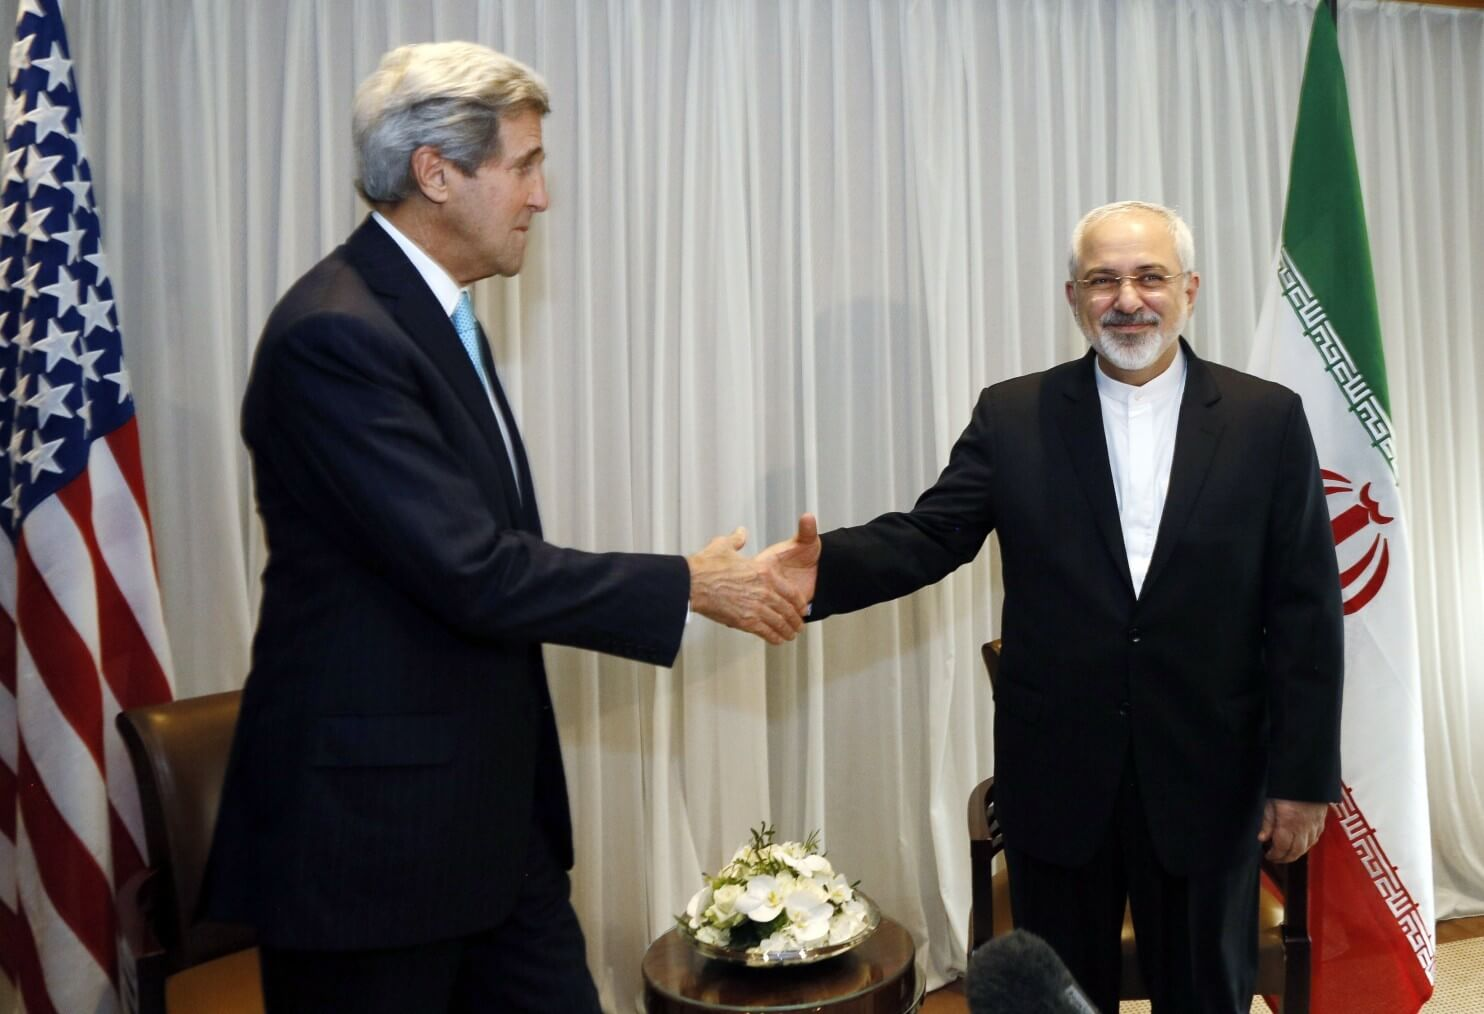 Iranian Foreign Minister Mohammad Javad Zarif (R) and U.S. State Secretary John Kerry in Geneva, January 14, 2015 . (Rick Wilking/AFP/Getty Images)